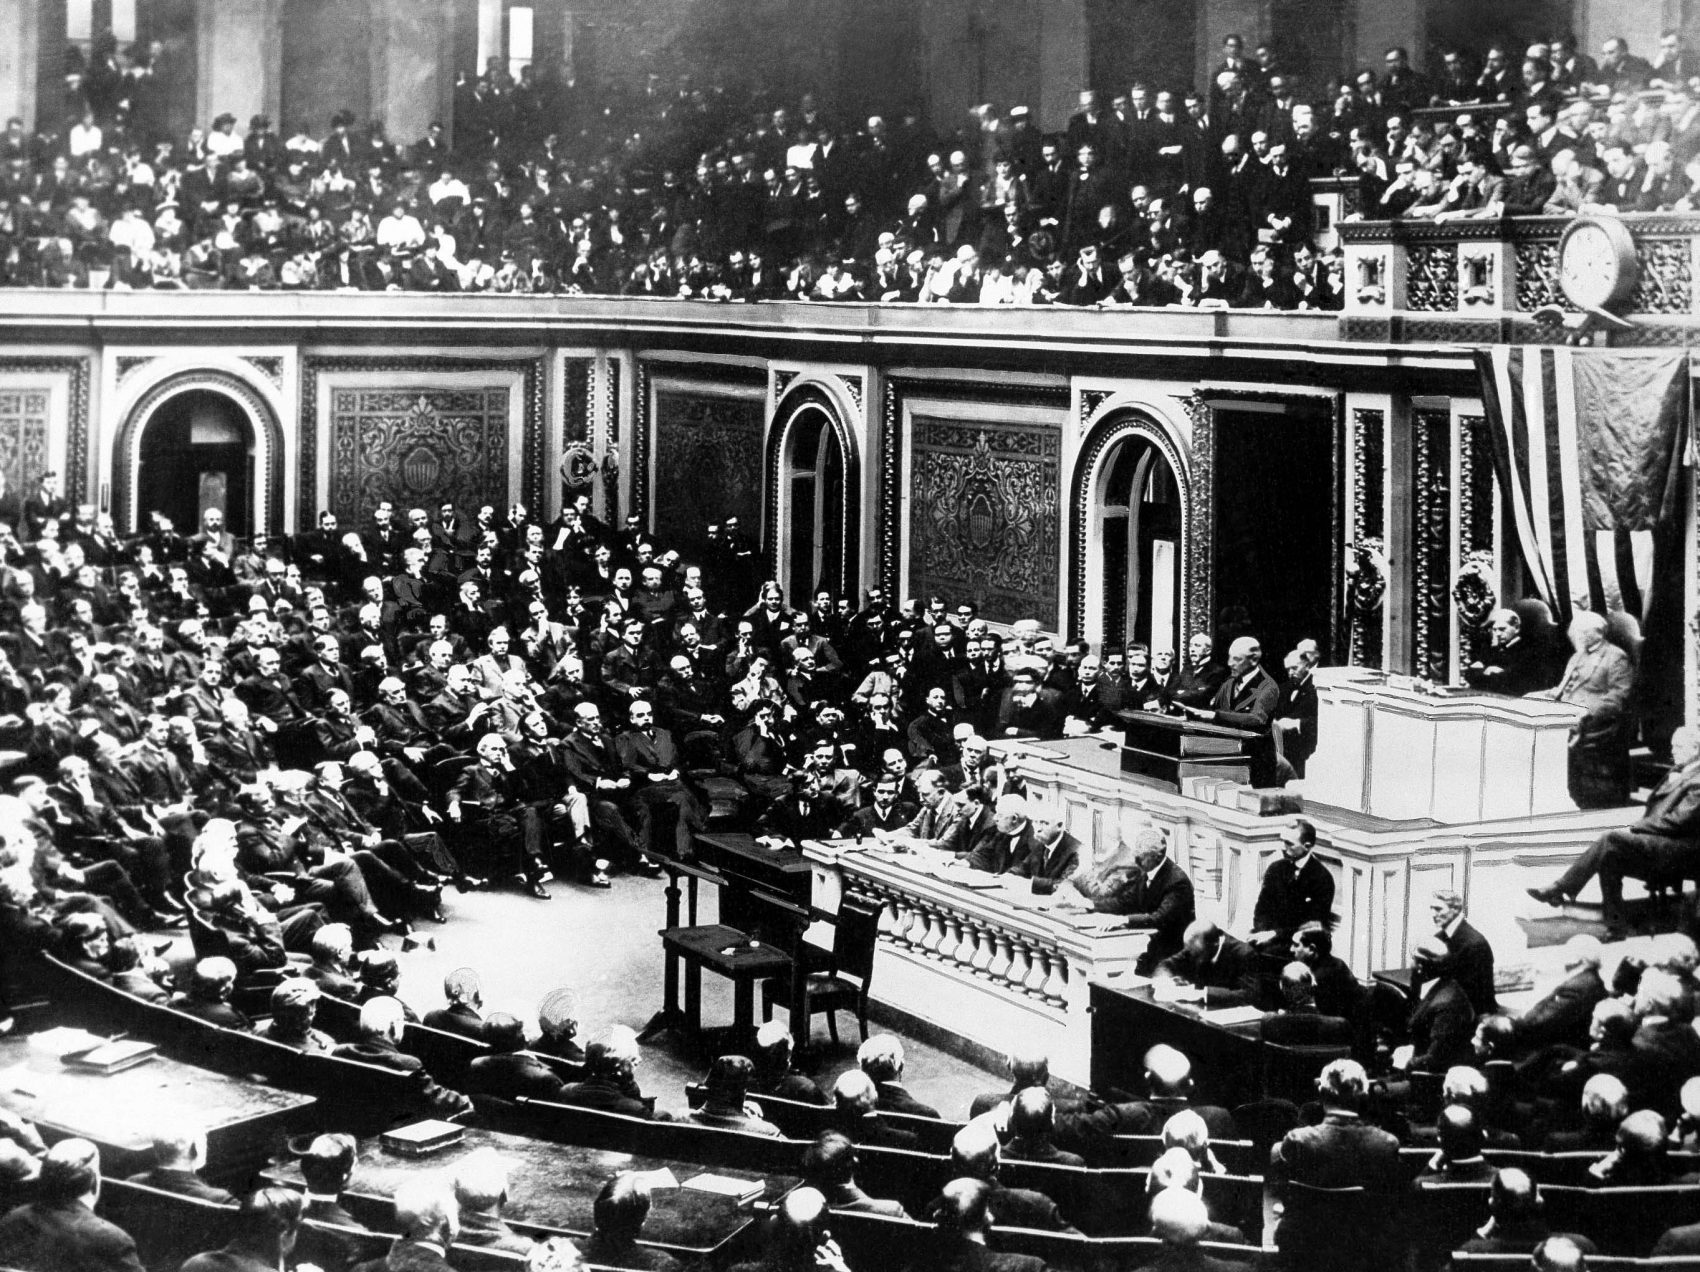 In this April 2, 1917 file photo, President Woodrow Wilson delivers a speech to the joint session of Congress, in Washington, United States, during World War I. (AP)